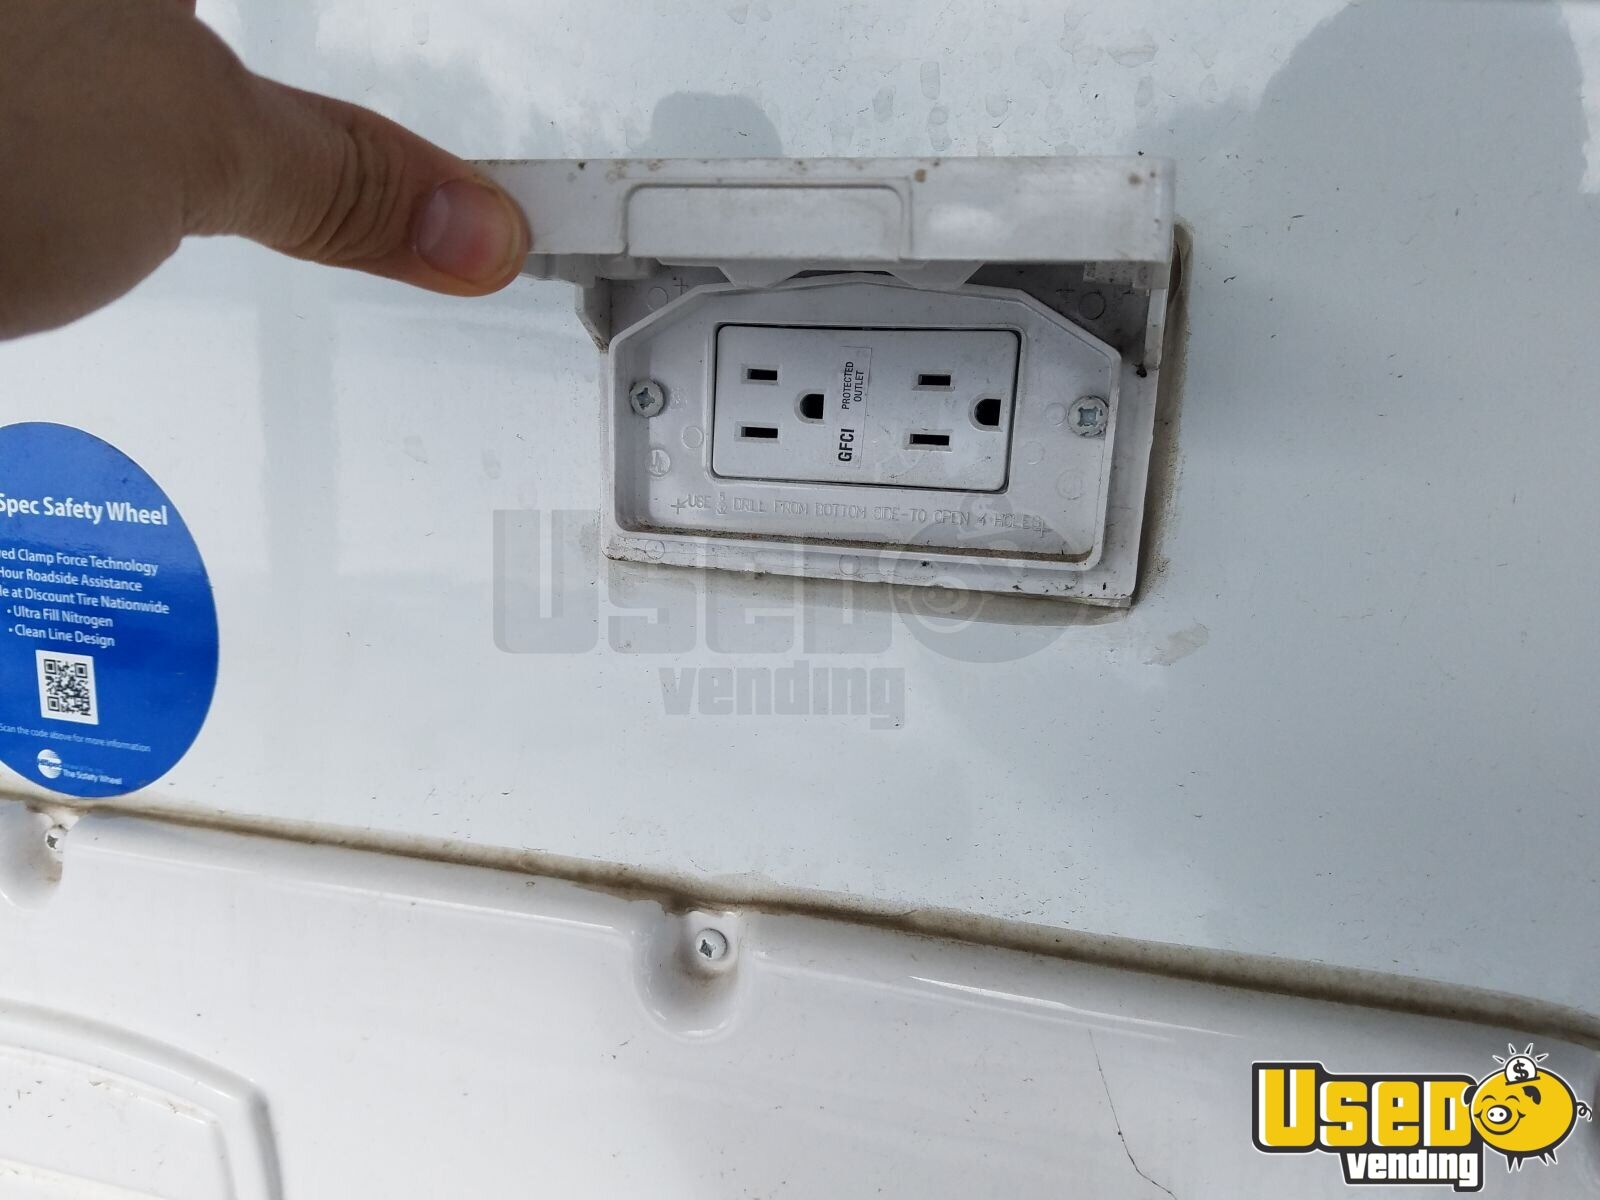 2015 Travellite I15q Other Mobile Business A/c Power Outlets Washington for Sale - 14